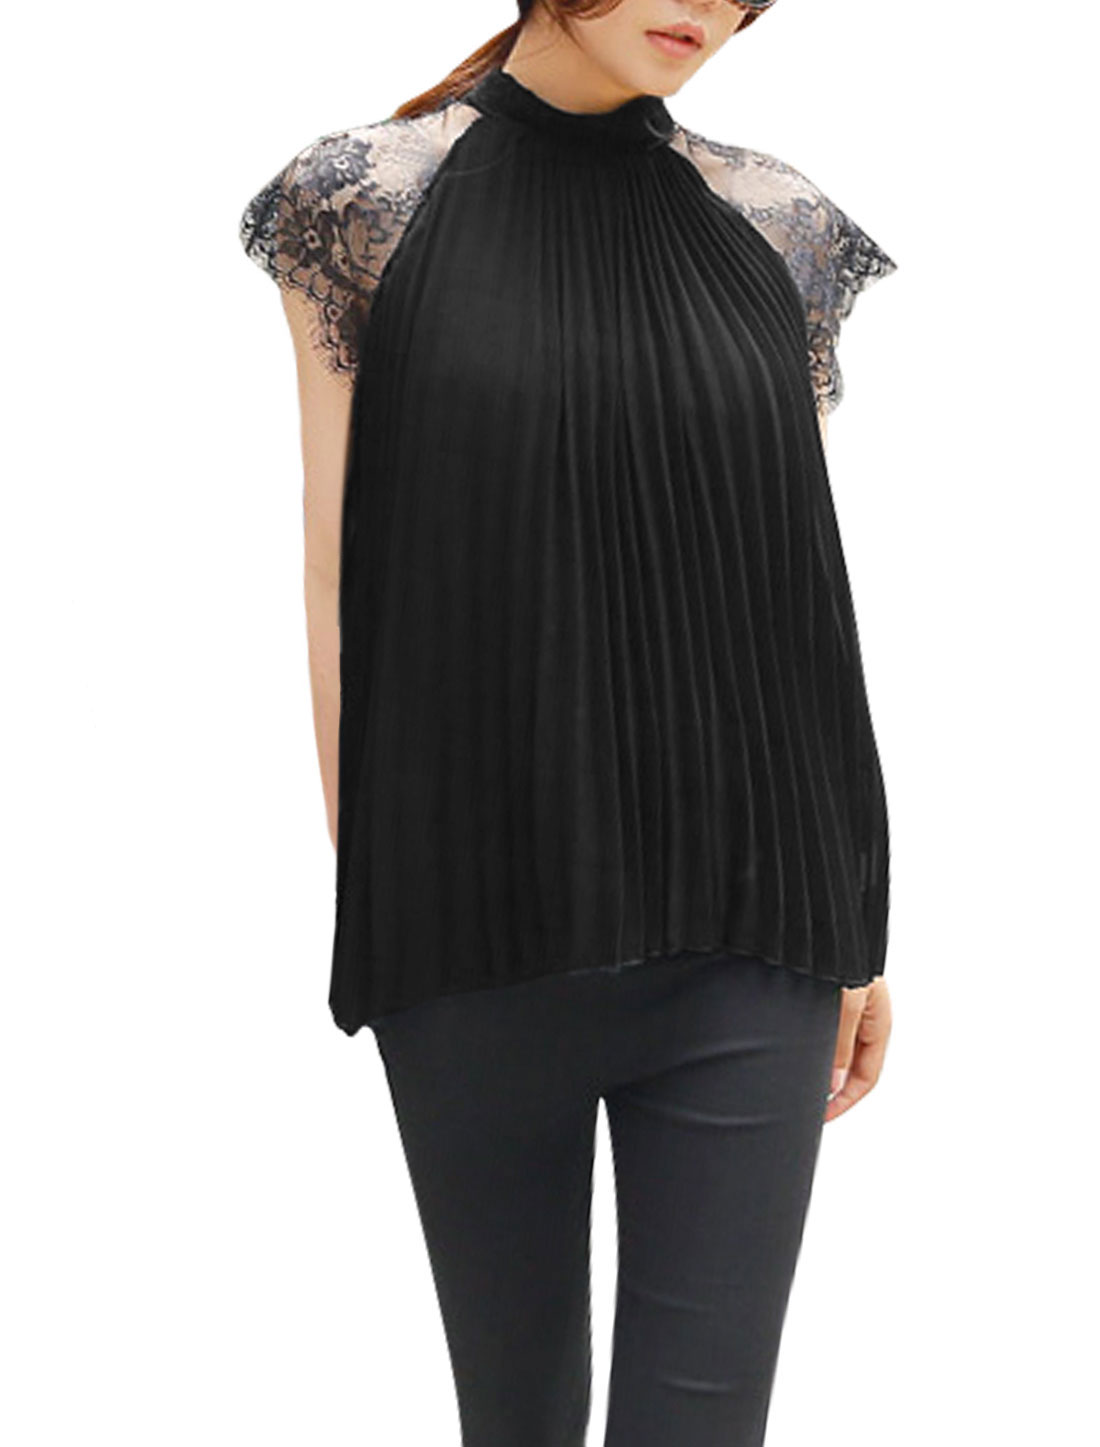 Women Eyelash Lace Panel Stand Collar Raglan Sleeves Pleated Chiffon Top Black XS